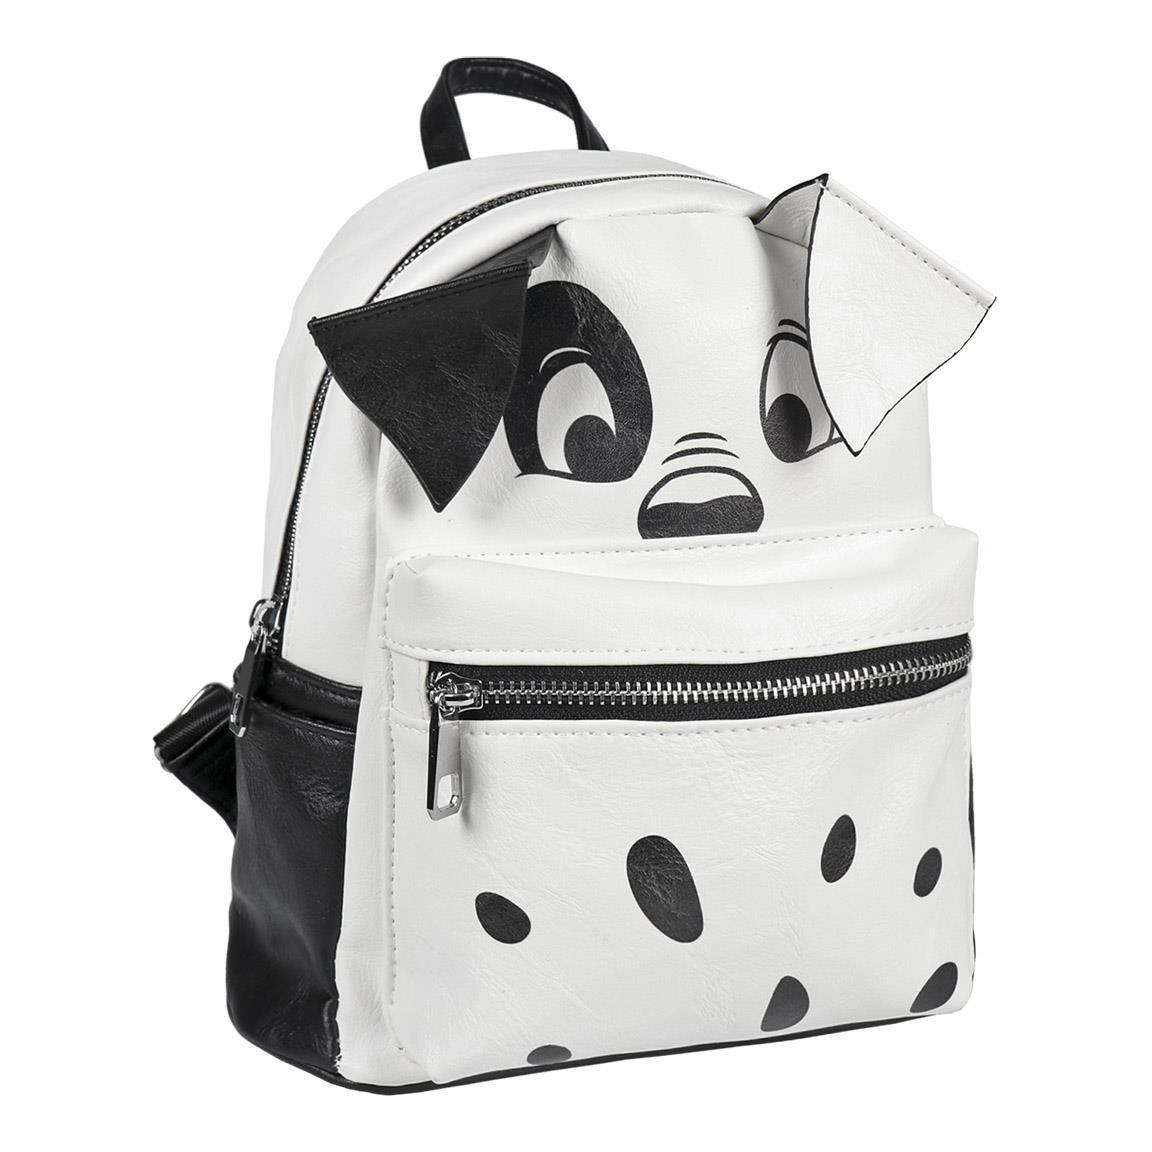 101 Dalmatians Casual Fashion Backpack Patch 22 x 25 x 11 cm